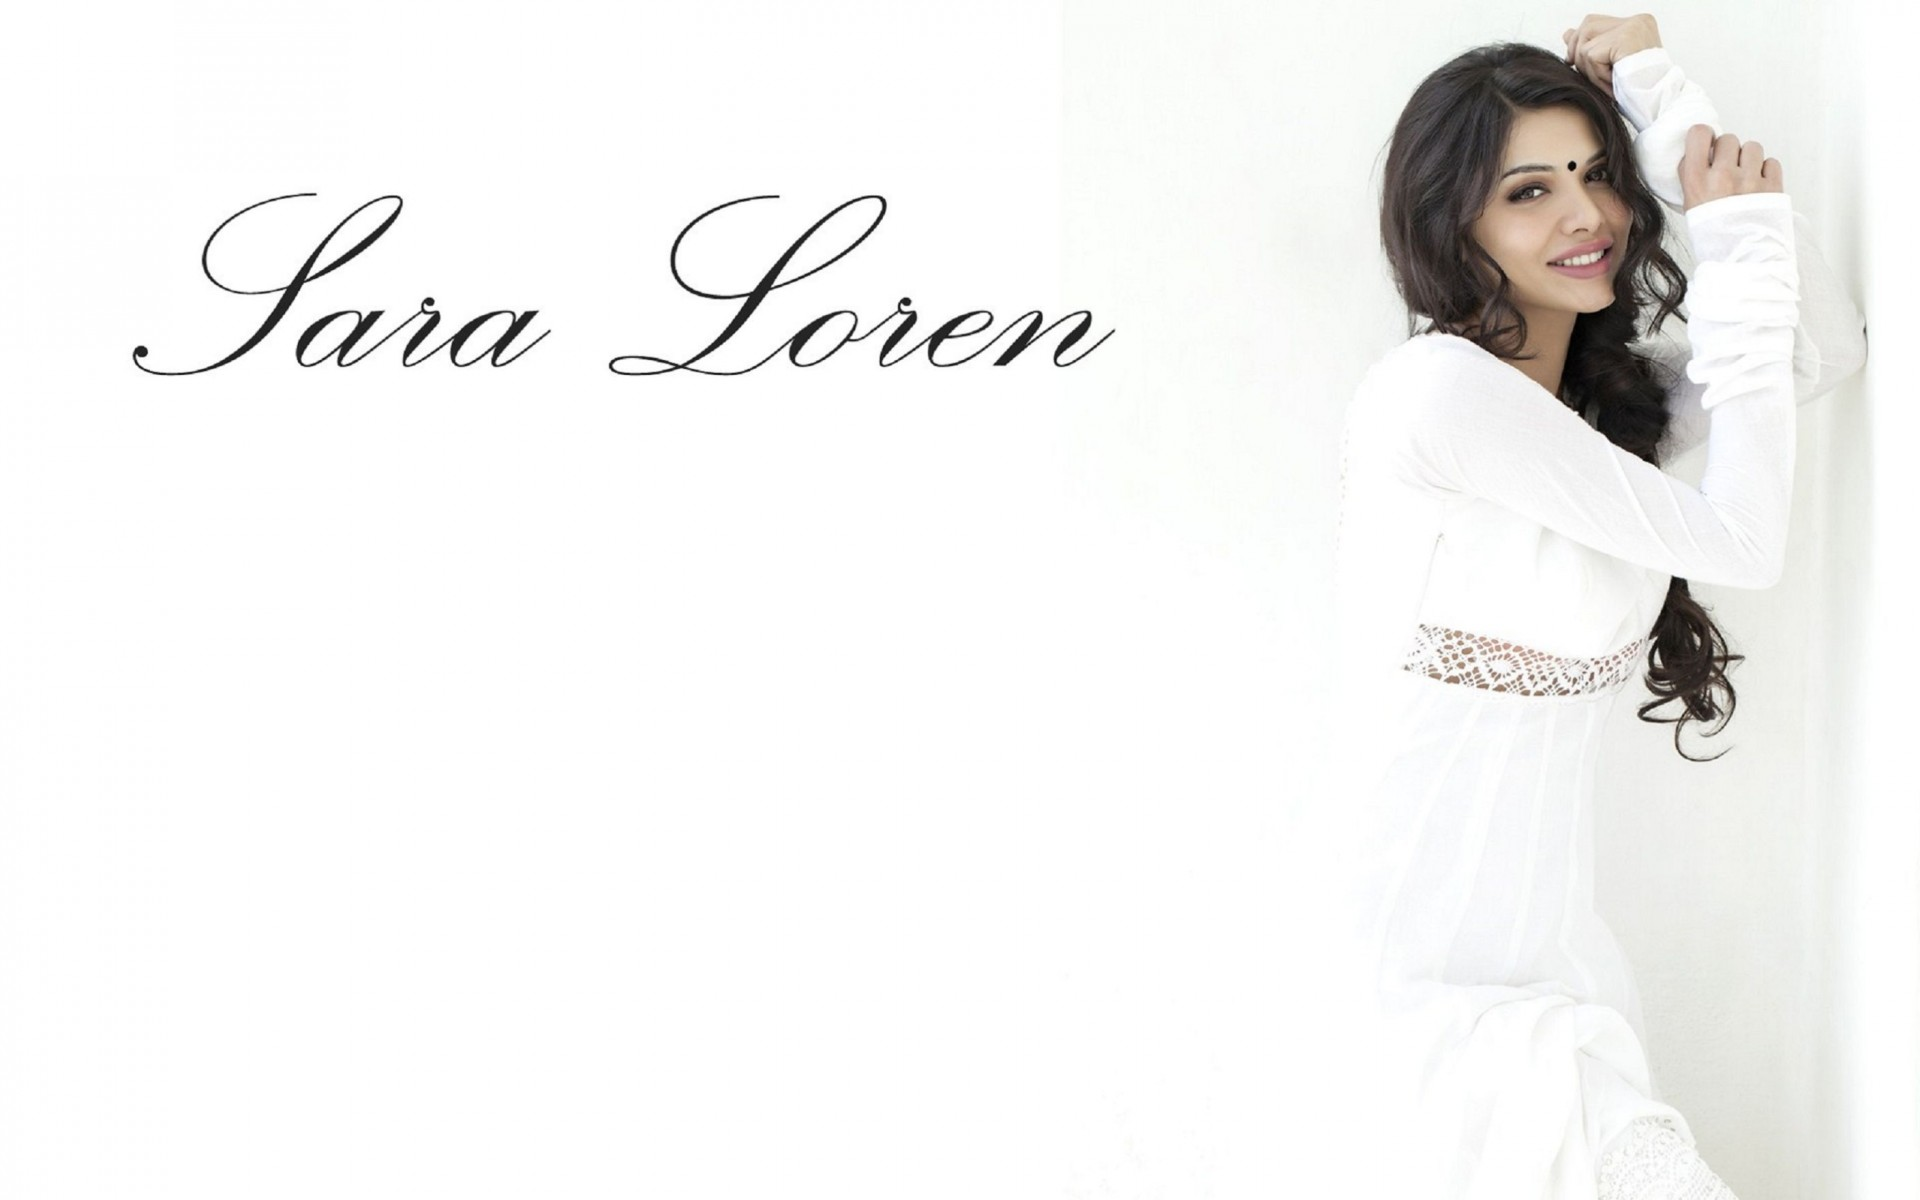 Sara Loren Actress Wallpaper